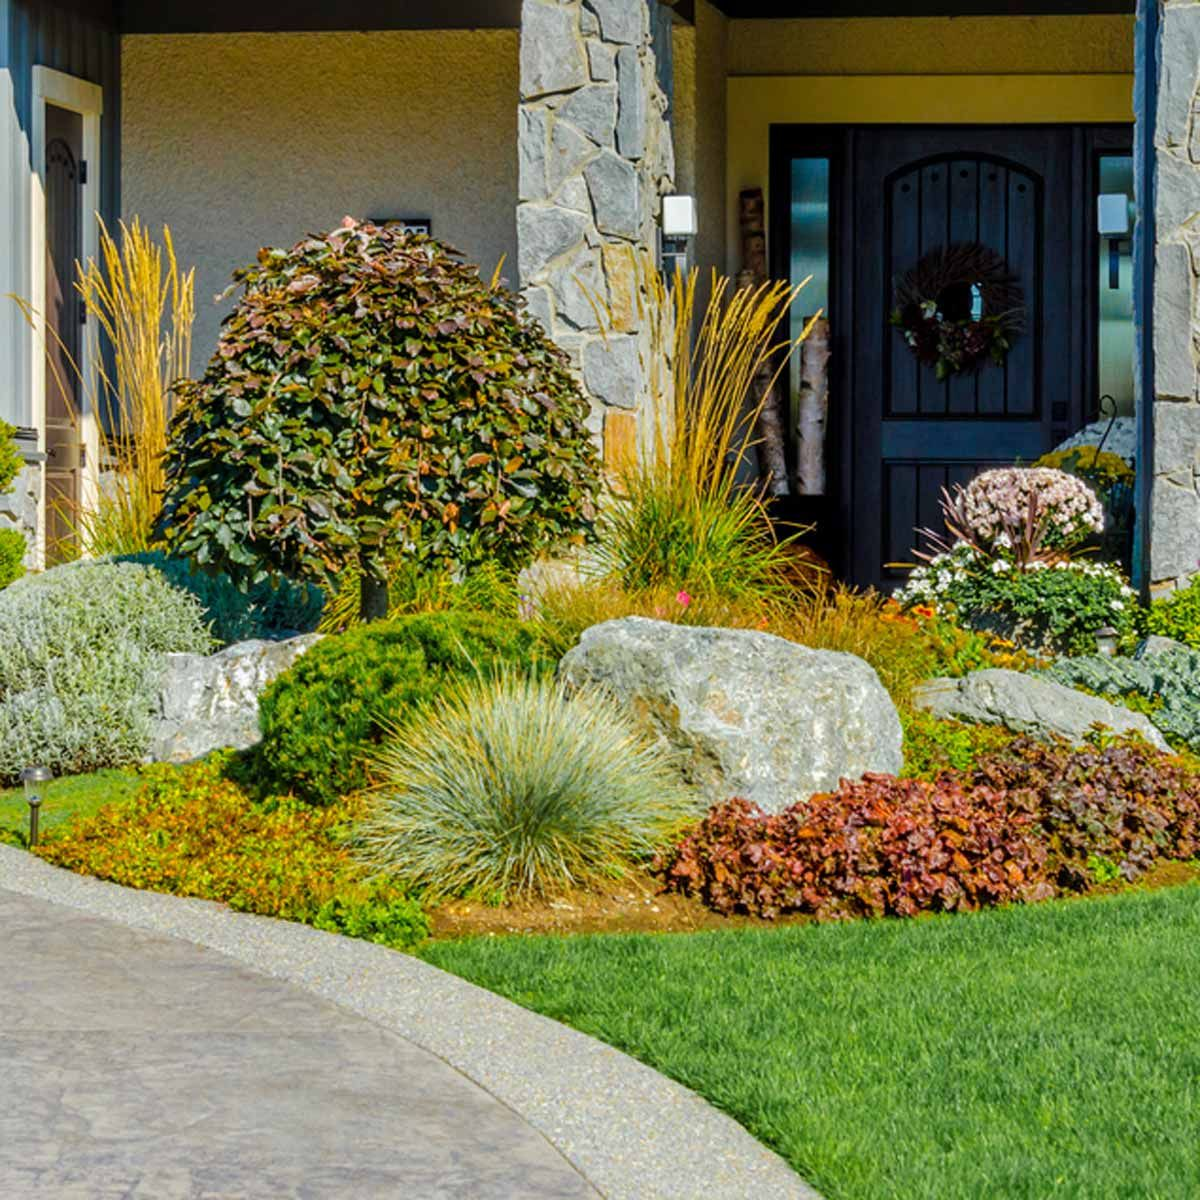 12 Simple Ways To Enhance Curb Appeal